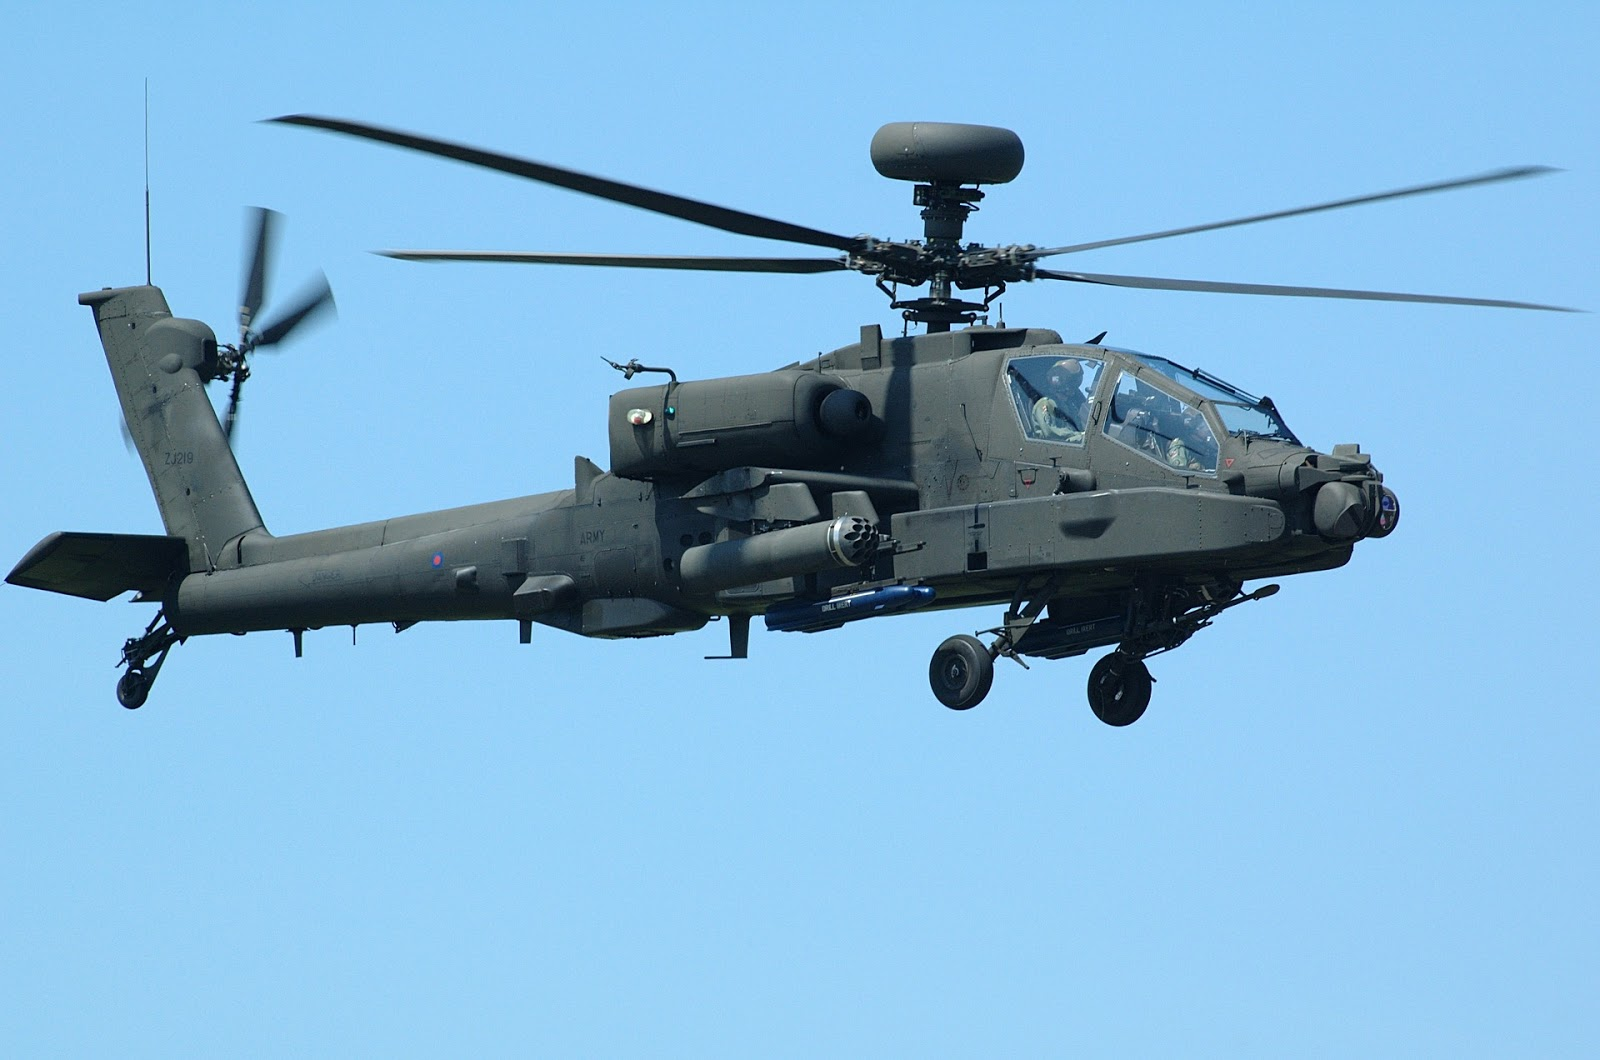 army apache combat helicopter on blue background for blog post about movie apache warrior